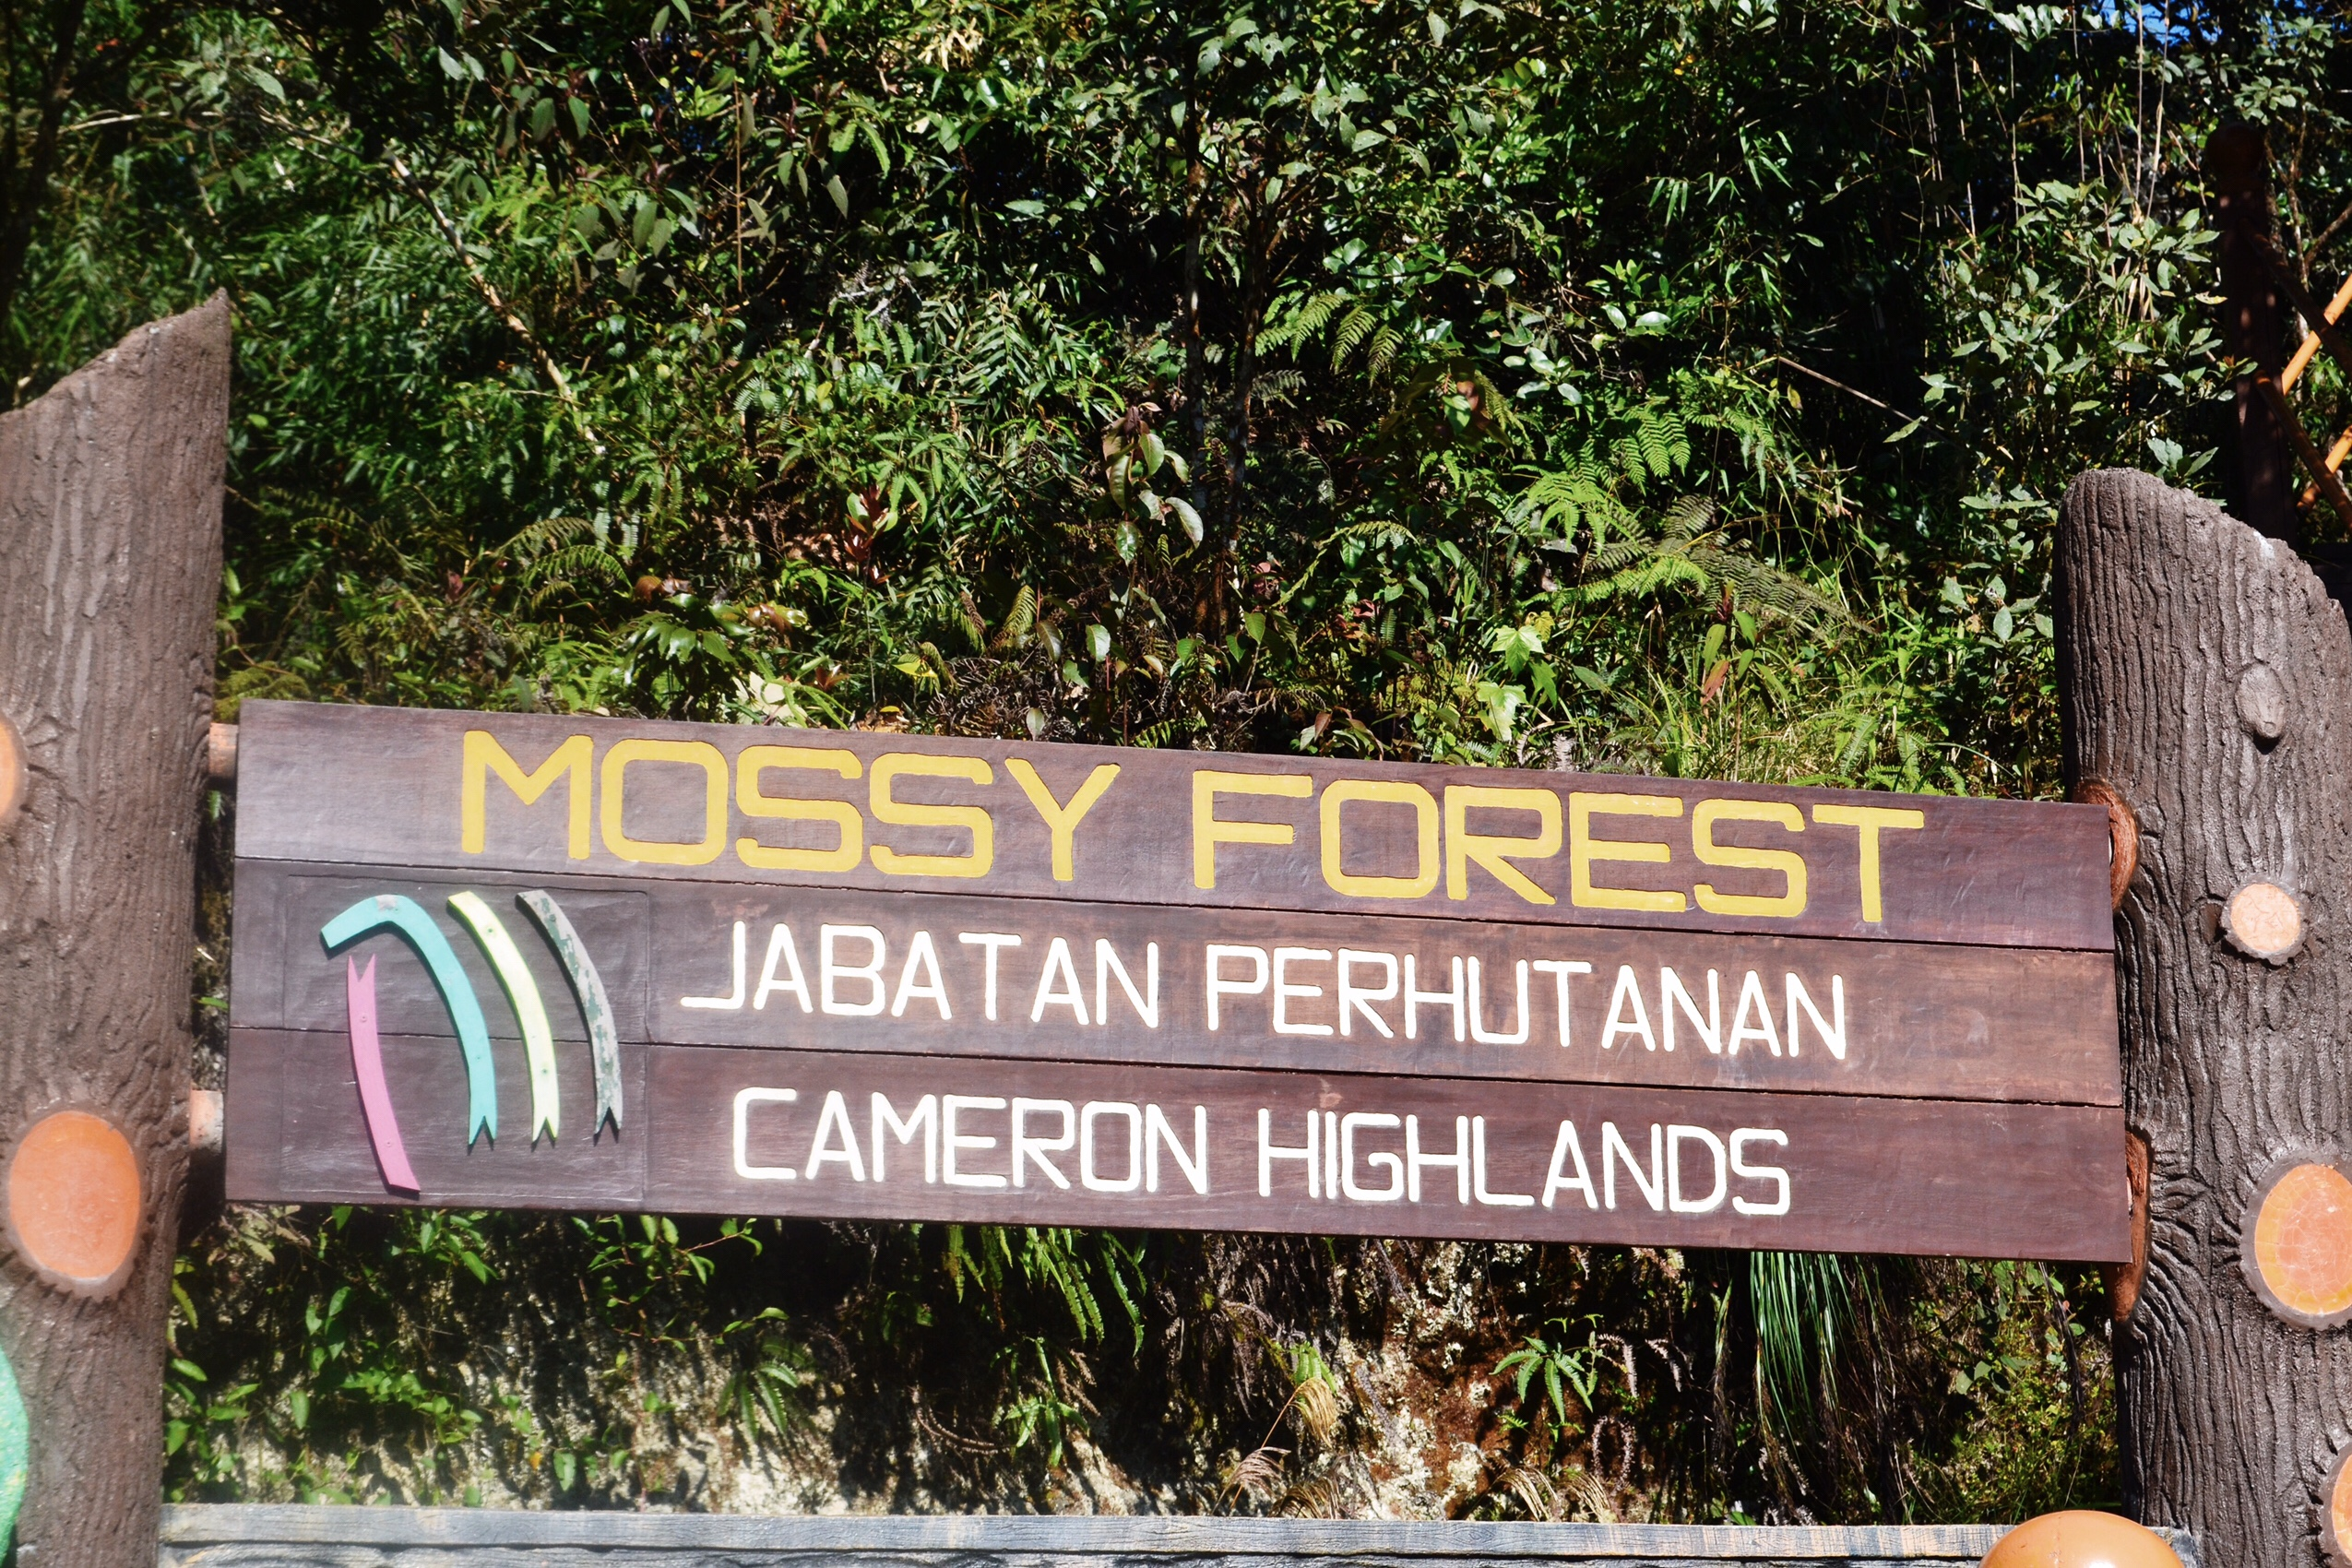 Image of Mossy Forest in Malaysia